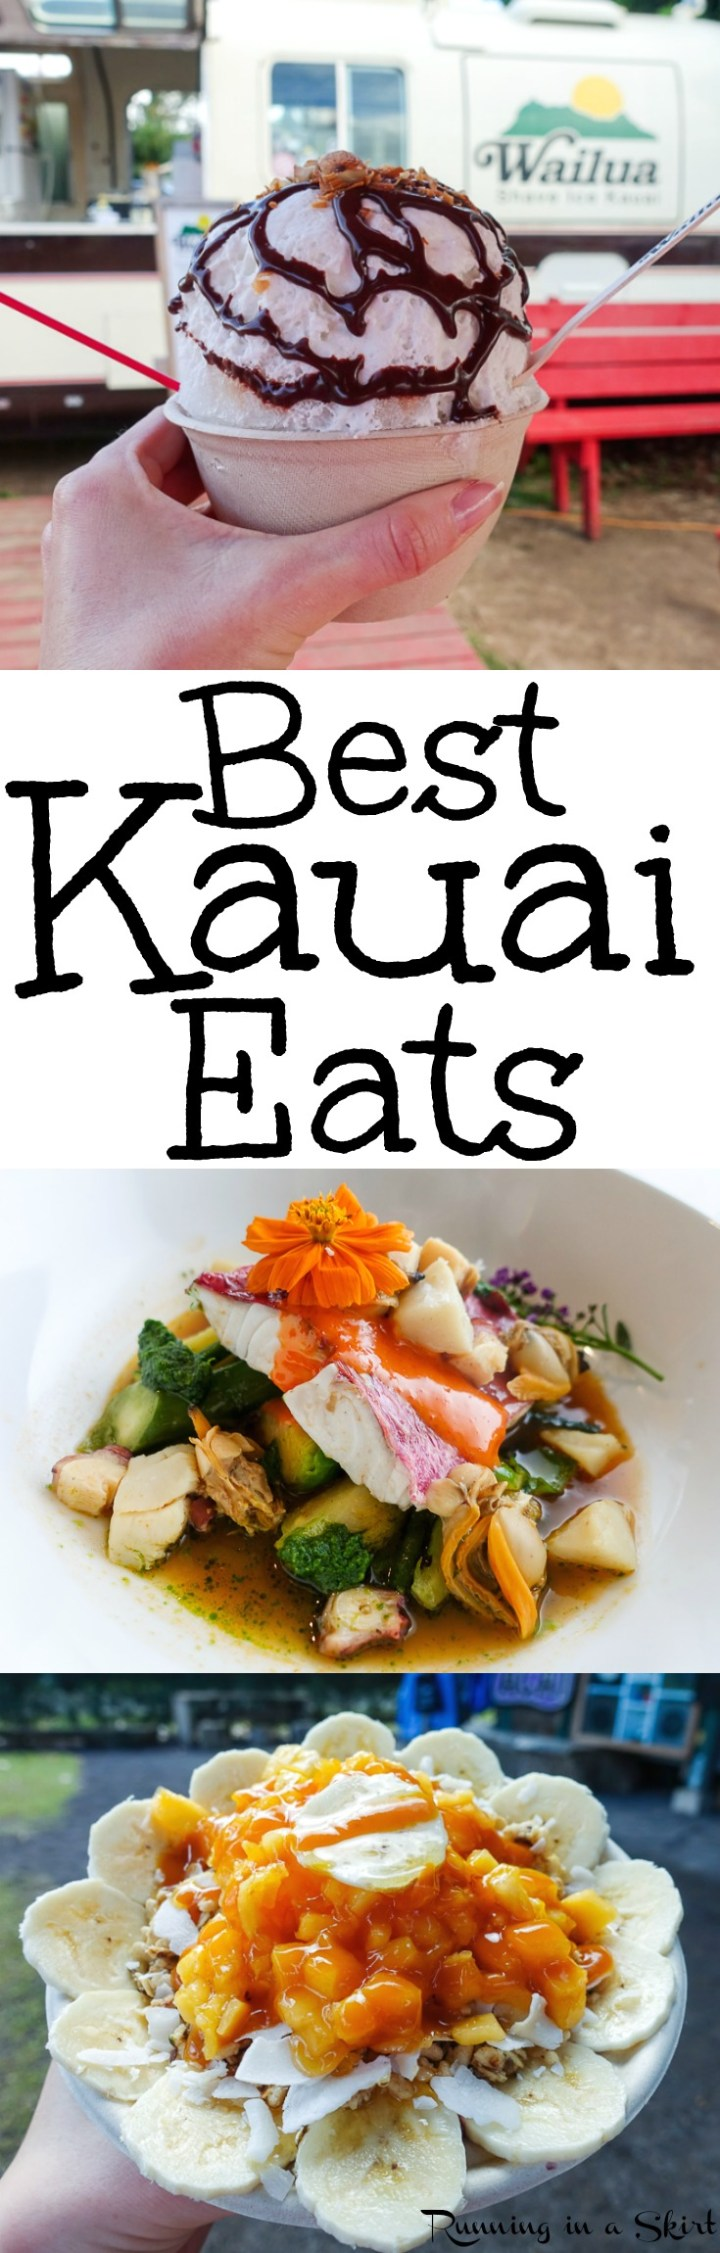 Best Kauai Eats - From restaurants, farmers' markets, food trucks, shave ice stands and awesome fruit (including Sugarloaf Pineapple & passion fruit)... these are the meals you must eat when you travel to Kauai, Hawaii. Includes breakfast, lunch and dinner ideas in Poipu and the North Shore. Whether you want cheap eats or fun elegant dinner, there are awesome suggestions. Great for foodies or honeymoons. / Running in a Skirt via @juliewunder